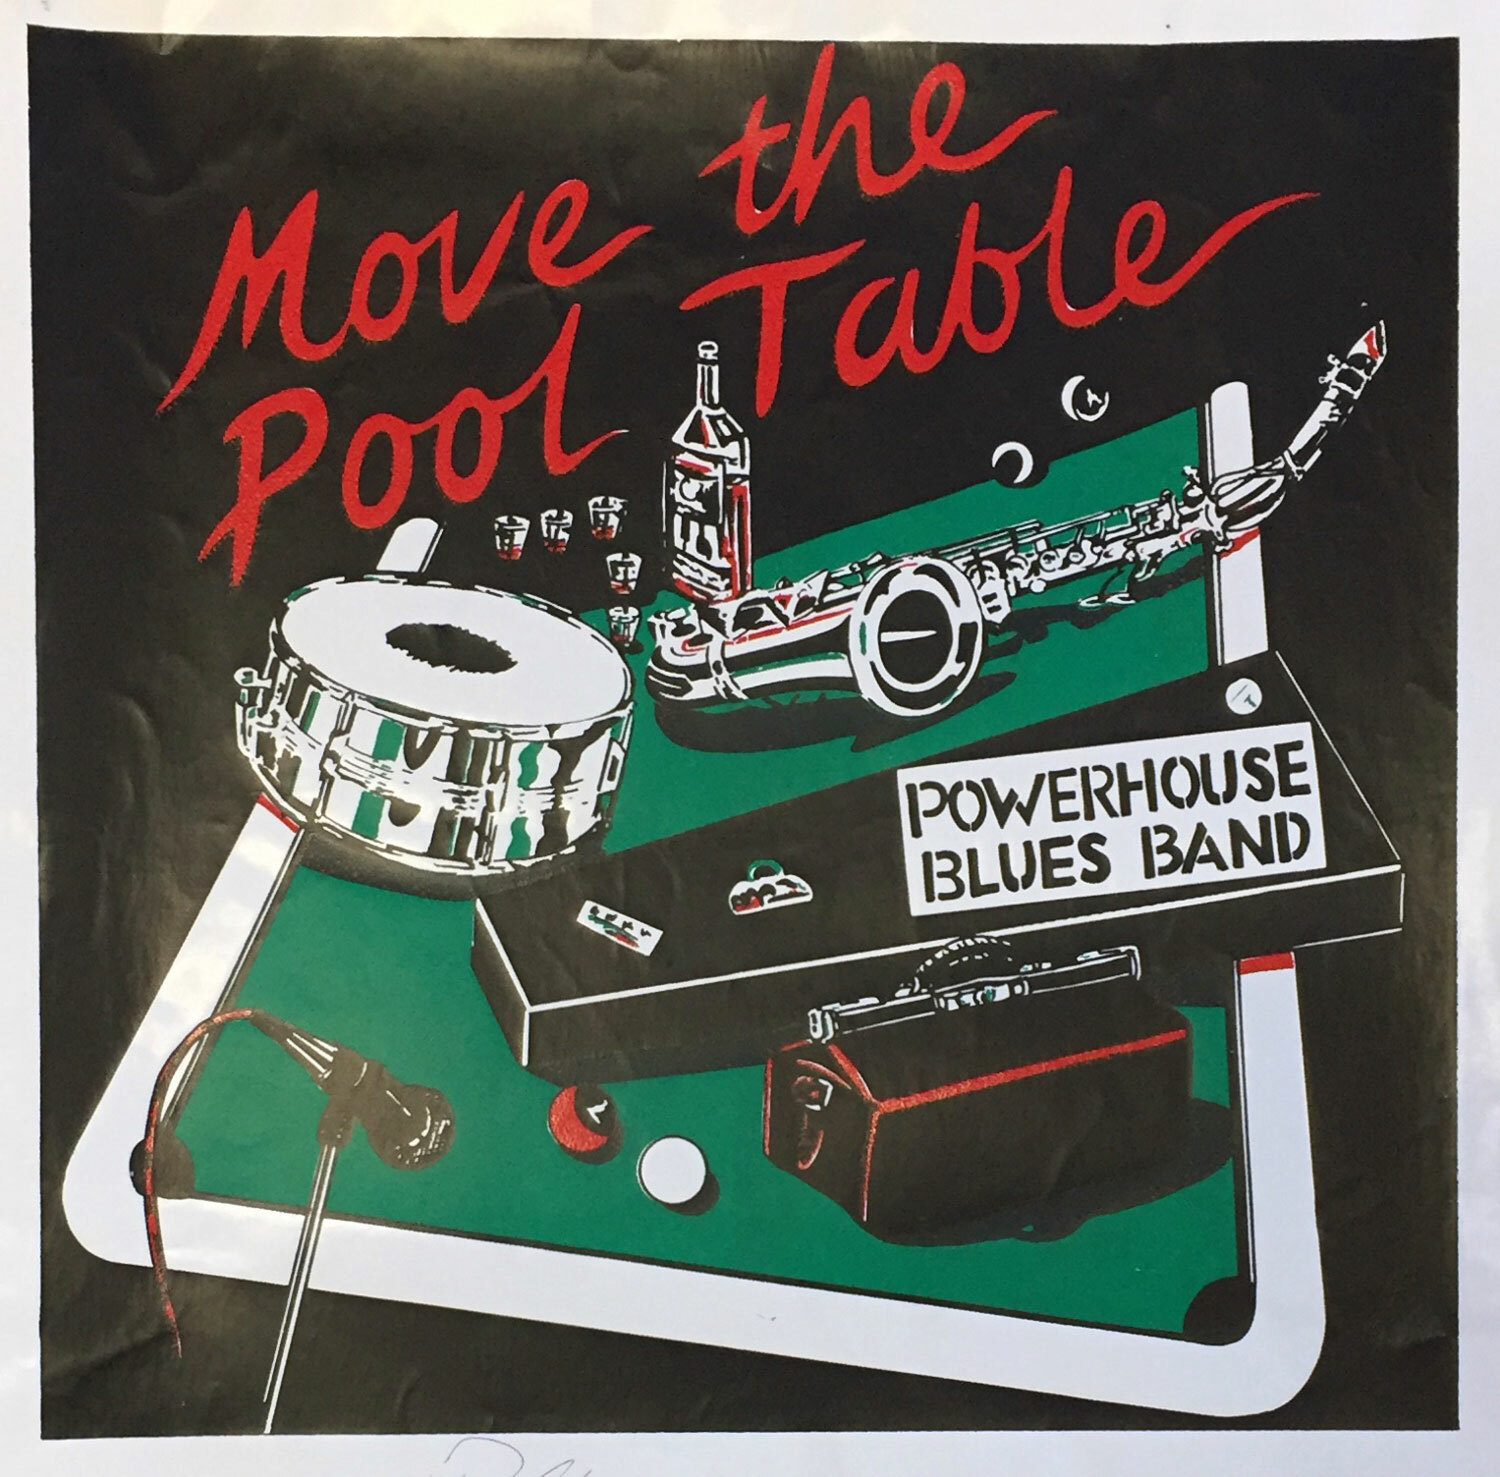 Move the Pool Table / A3-ish - I was given the job of designing a Powerhouse Blues Band CD cover and printing some gig posters. The name is from the band being told to play behind the pool table at one of their gigs. Of course, moving the table was out of the question, but some of the patrons still wanted a game while the band played on.